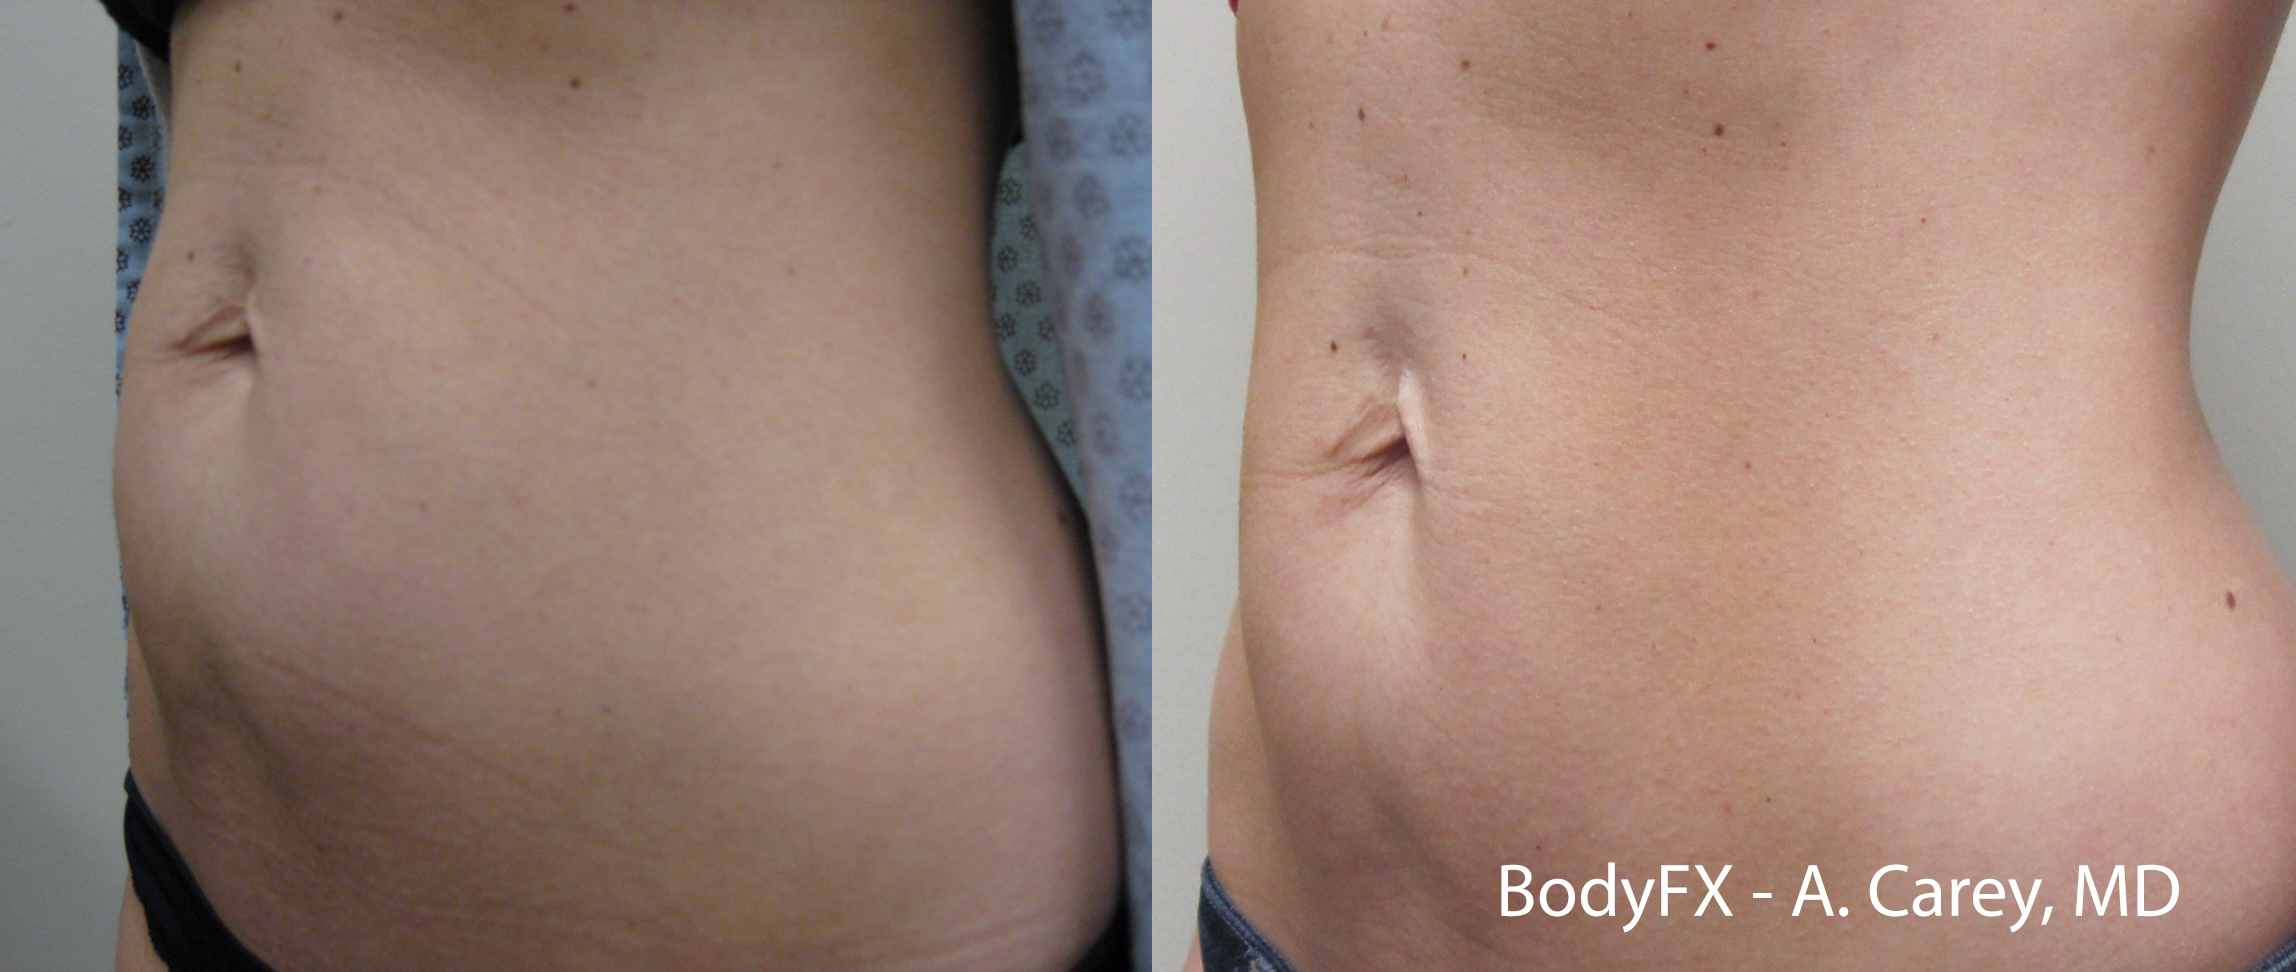 BodyFX_Before&After_001